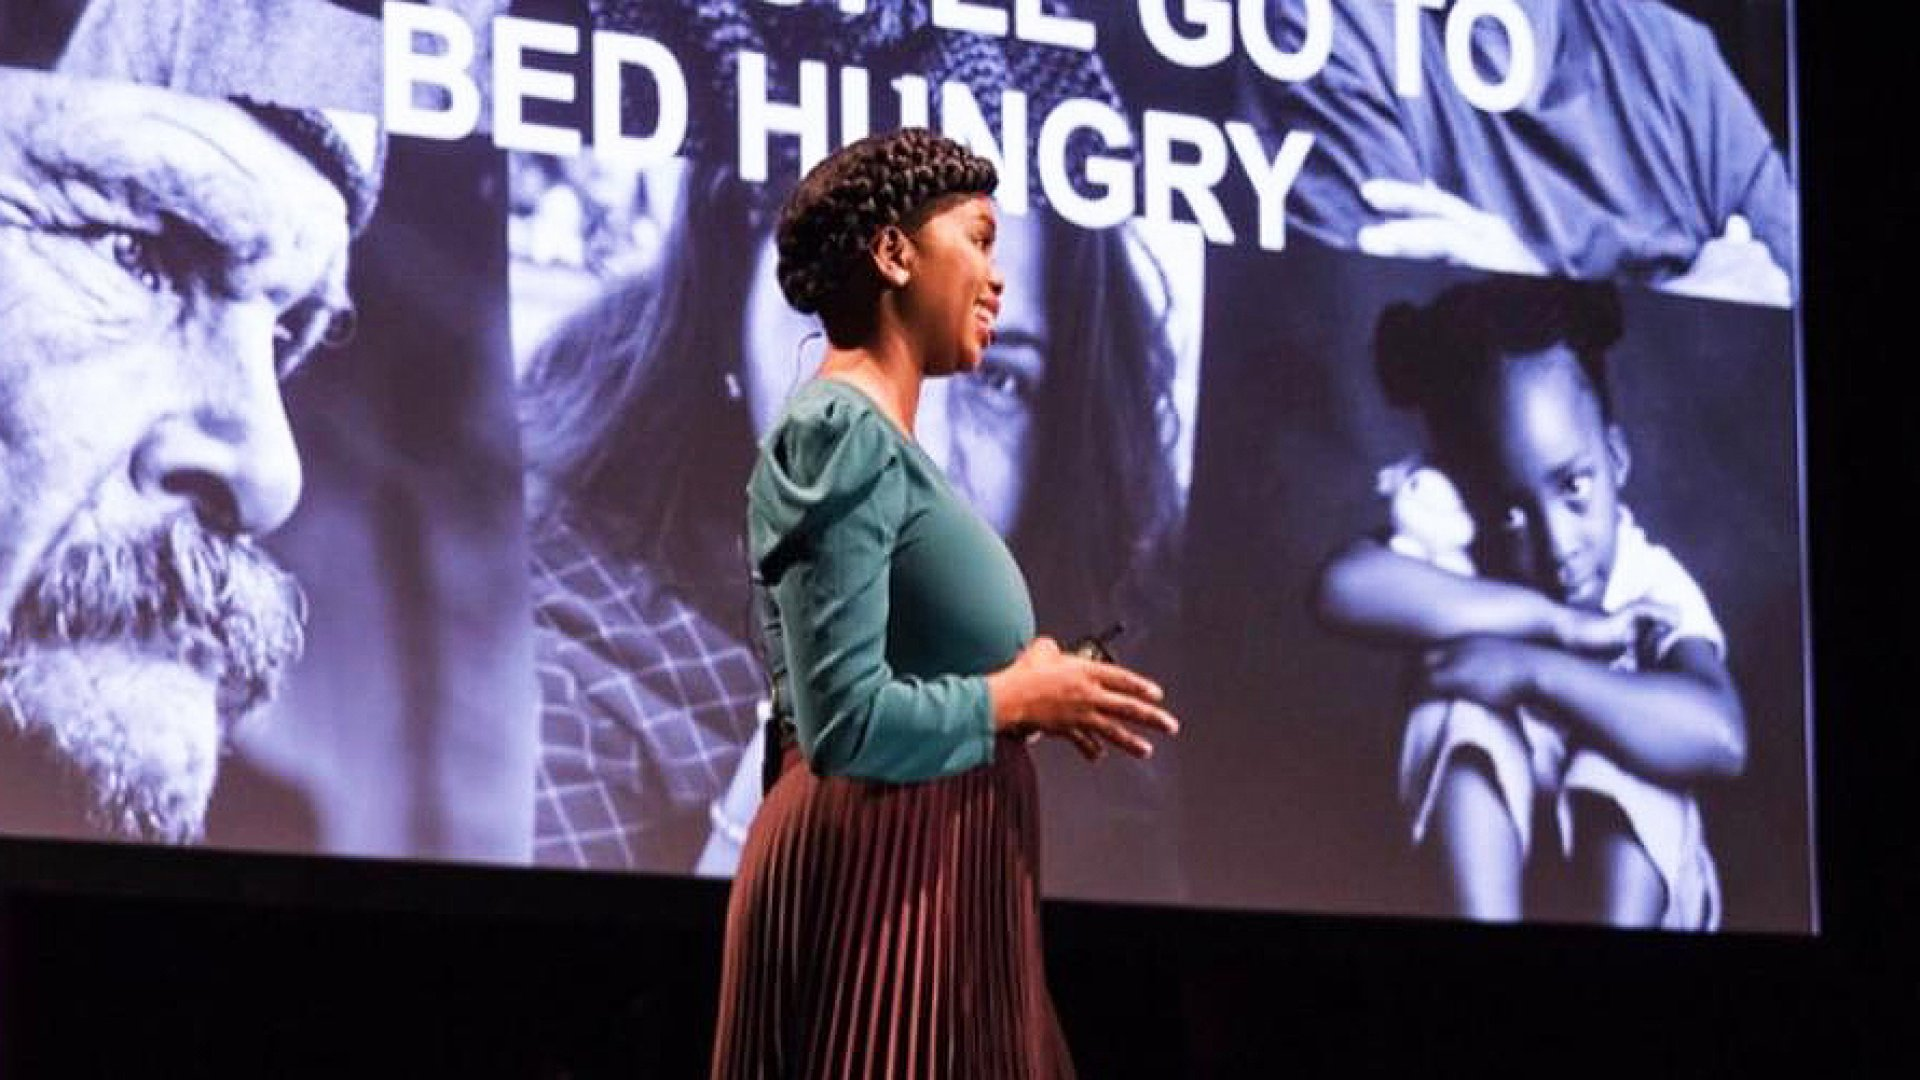 Goodr founder and CEO Jasmine Crowe gives a TED Talk.